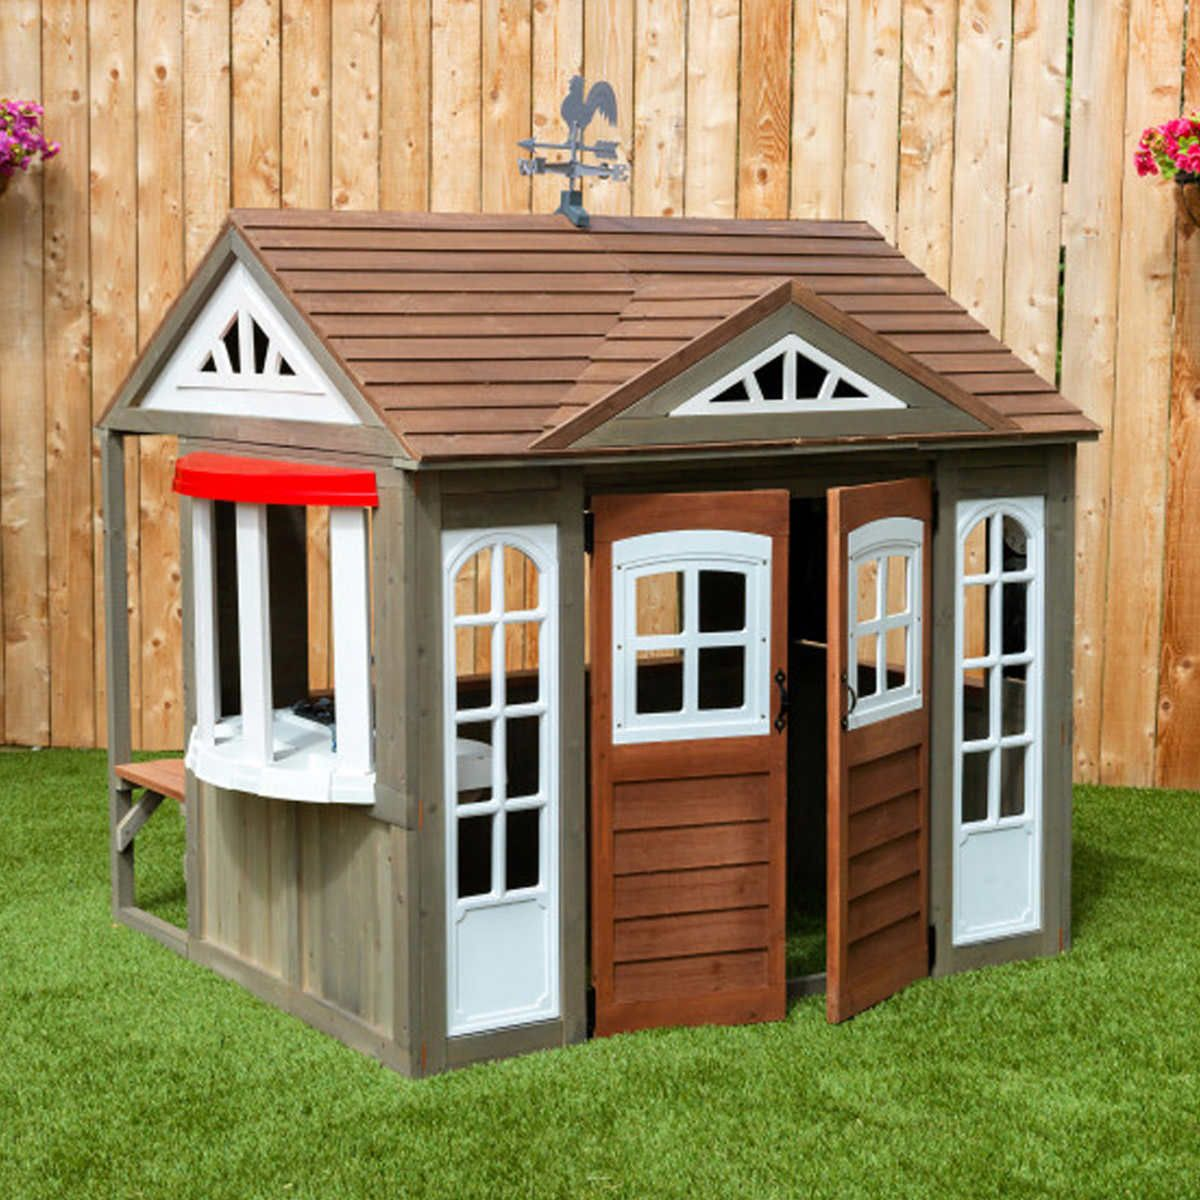 Pin by Amy Schultz on Girls' Play Area Play houses